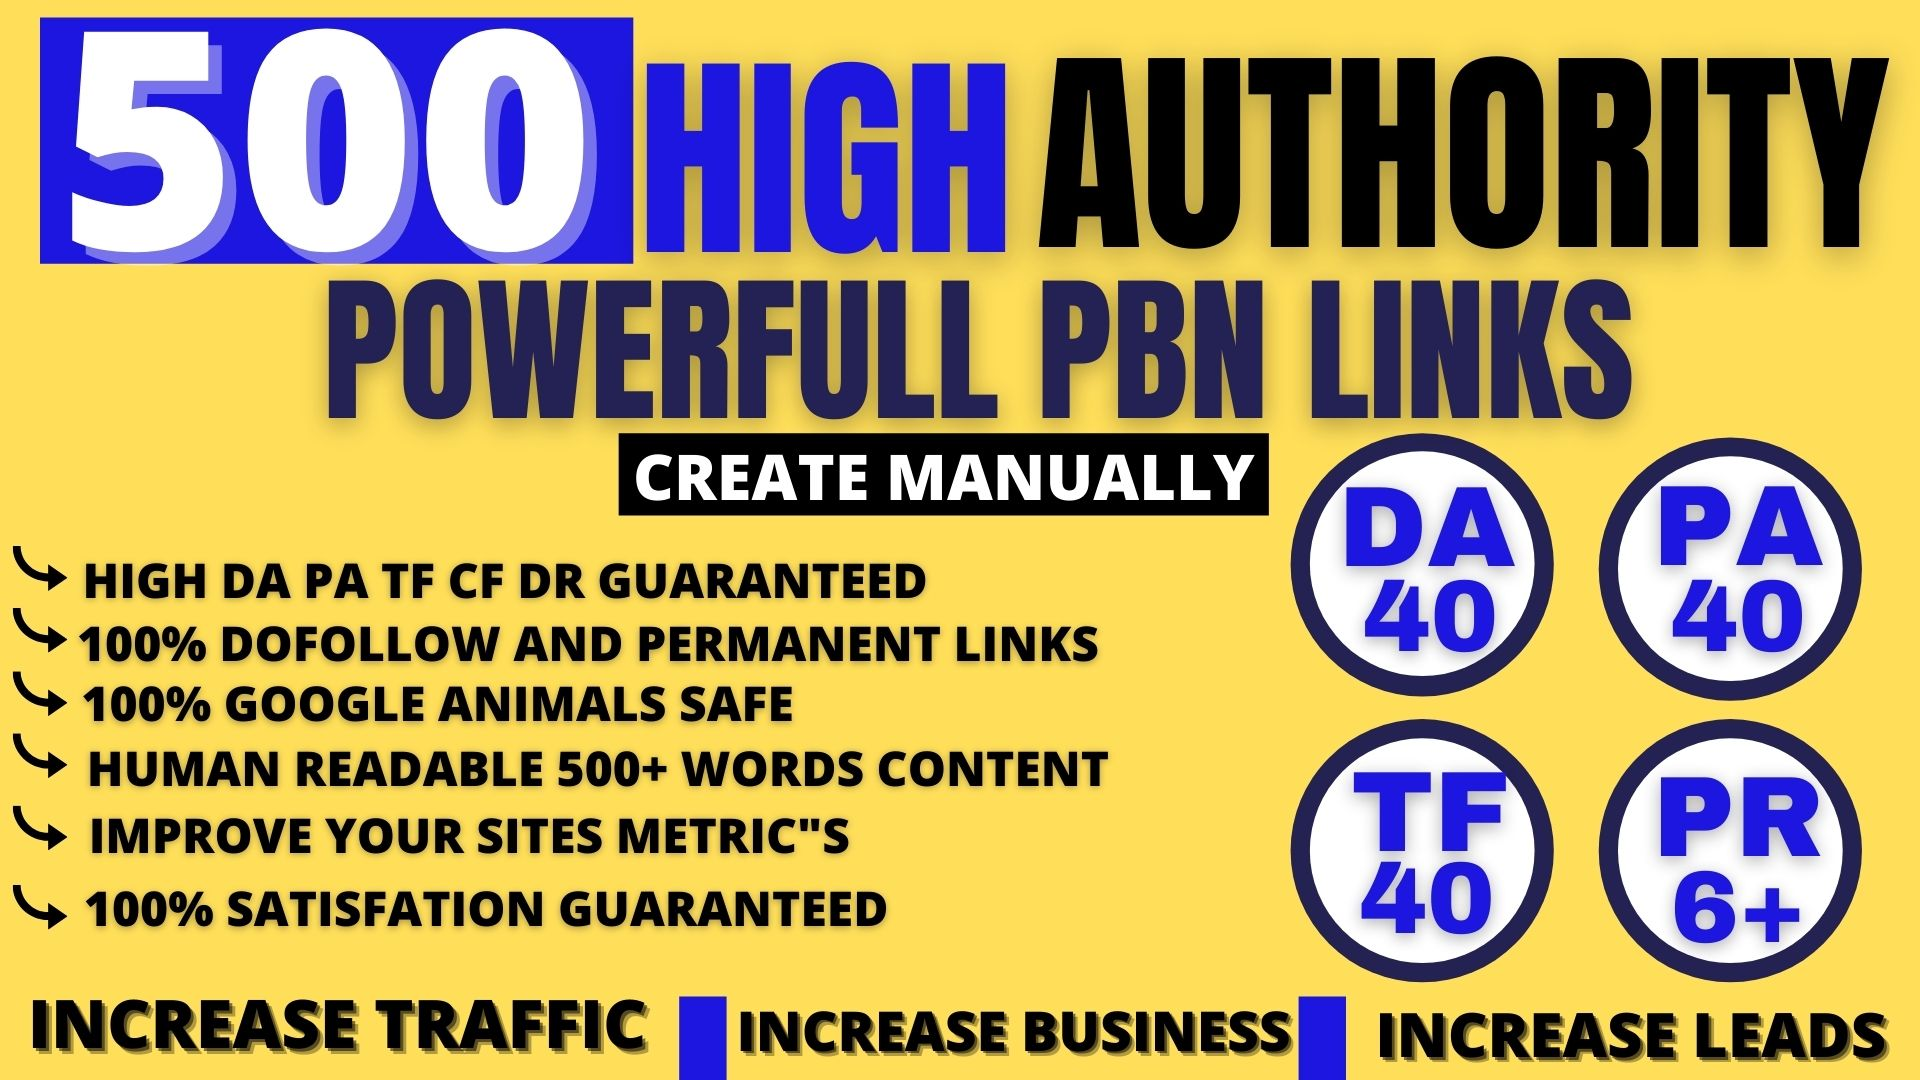 permanent 500 Pbn DA40+ PA40+PR6+web 2.0 dofollow backlinks 500 unique site